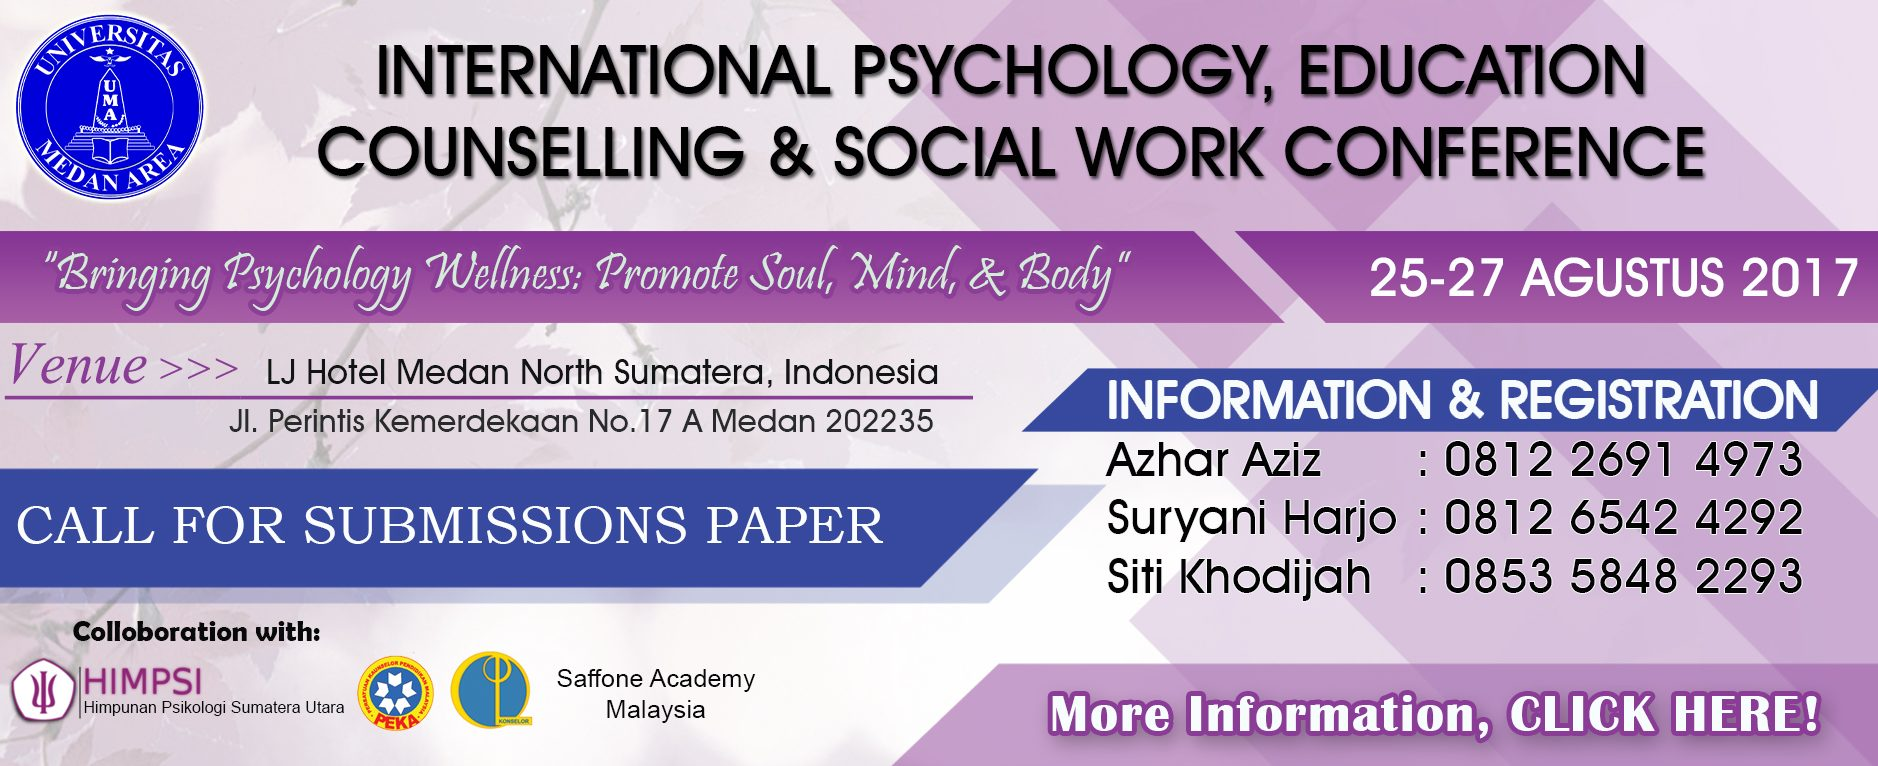 Internasional Psychology, Education Counselling & Social Work Conference 2017